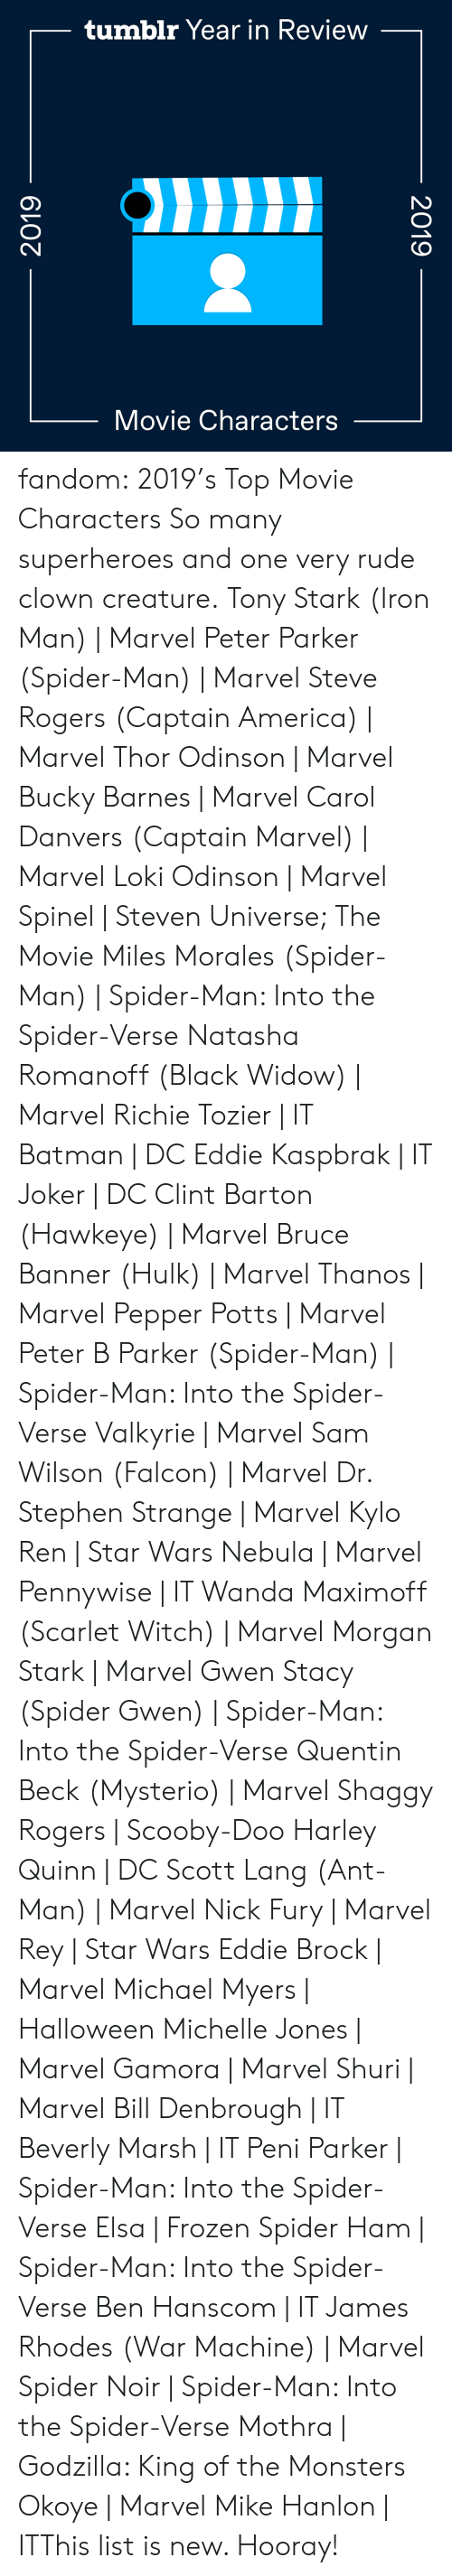 Eddie: tumblr Year in Review  Movie Characters  2019  2019 fandom:  2019's Top Movie Characters  So many superheroes and one very rude clown creature.  Tony Stark (Iron Man) | Marvel  Peter Parker (Spider-Man) | Marvel  Steve Rogers (Captain America) | Marvel  Thor Odinson | Marvel  Bucky Barnes | Marvel  Carol Danvers (Captain Marvel) | Marvel  Loki Odinson | Marvel  Spinel | Steven Universe; The Movie  Miles Morales (Spider-Man) | Spider-Man: Into the Spider-Verse  Natasha Romanoff (Black Widow) | Marvel  Richie Tozier | IT  Batman | DC  Eddie Kaspbrak | IT  Joker | DC  Clint Barton (Hawkeye) | Marvel  Bruce Banner (Hulk) | Marvel  Thanos | Marvel  Pepper Potts | Marvel  Peter B Parker (Spider-Man) | Spider-Man: Into the Spider-Verse  Valkyrie | Marvel  Sam Wilson (Falcon) | Marvel  Dr. Stephen Strange | Marvel  Kylo Ren | Star Wars  Nebula | Marvel  Pennywise | IT  Wanda Maximoff (Scarlet Witch) | Marvel  Morgan Stark | Marvel  Gwen Stacy (Spider Gwen) | Spider-Man: Into the Spider-Verse  Quentin Beck (Mysterio) | Marvel  Shaggy Rogers | Scooby-Doo  Harley Quinn | DC  Scott Lang (Ant-Man) | Marvel  Nick Fury | Marvel  Rey | Star Wars  Eddie Brock | Marvel  Michael Myers | Halloween  Michelle Jones | Marvel  Gamora | Marvel  Shuri | Marvel  Bill Denbrough | IT  Beverly Marsh | IT  Peni Parker | Spider-Man: Into the Spider-Verse  Elsa | Frozen  Spider Ham | Spider-Man: Into the Spider-Verse  Ben Hanscom | IT  James Rhodes (War Machine) | Marvel  Spider Noir | Spider-Man: Into the Spider-Verse  Mothra | Godzilla: King of the Monsters  Okoye | Marvel Mike Hanlon | ITThis list is new. Hooray!